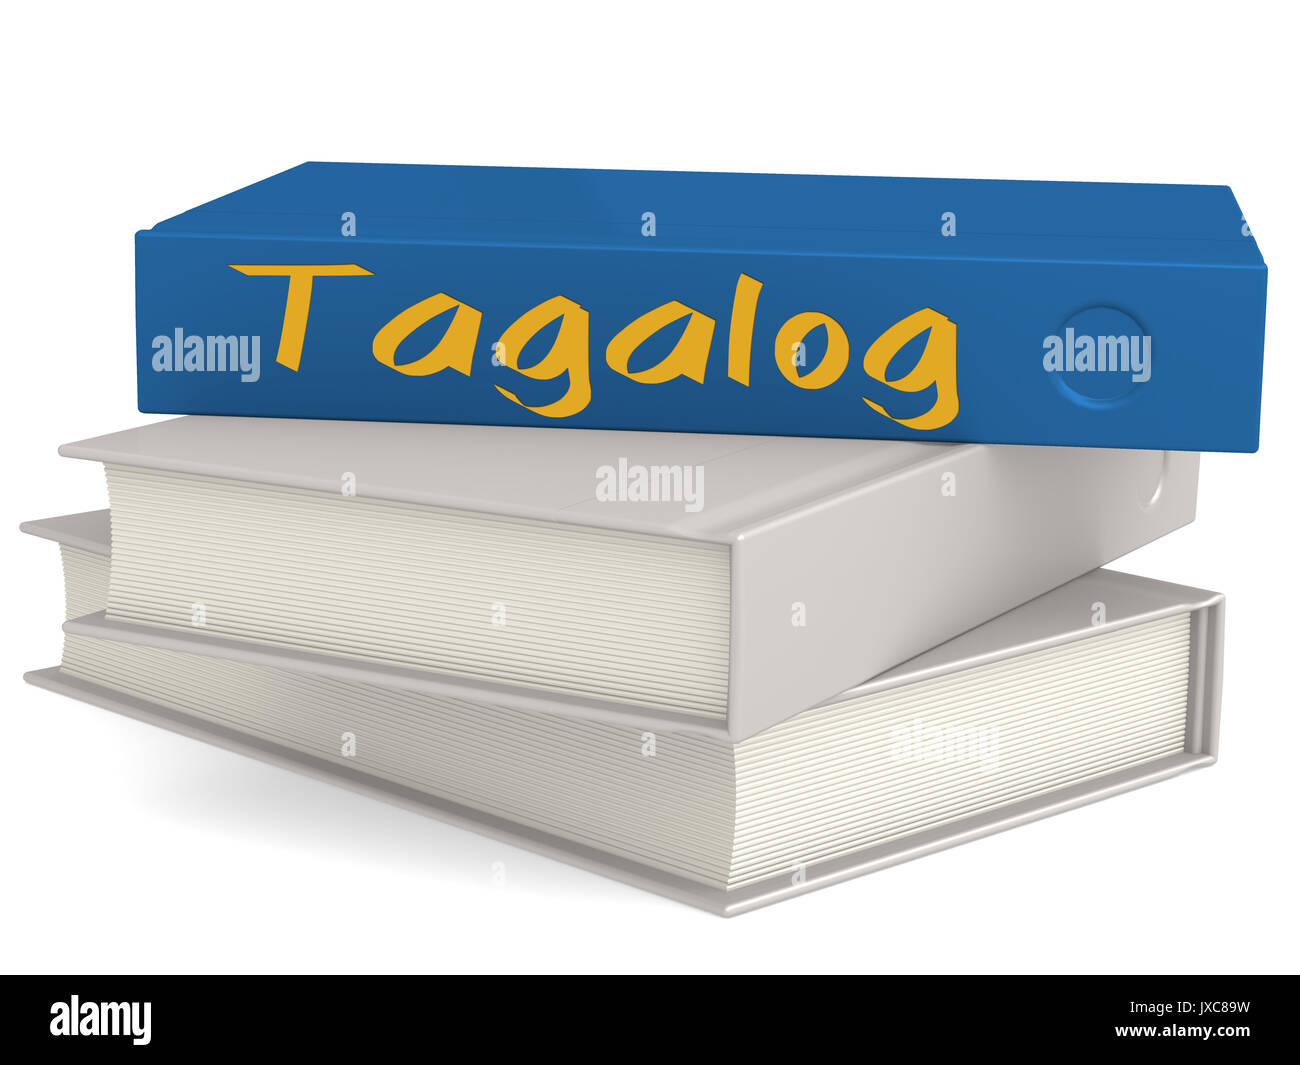 Frohe Weihnachten Tagalog Tagalog Word Stock Photos Tagalog Word Stock Images Alamy